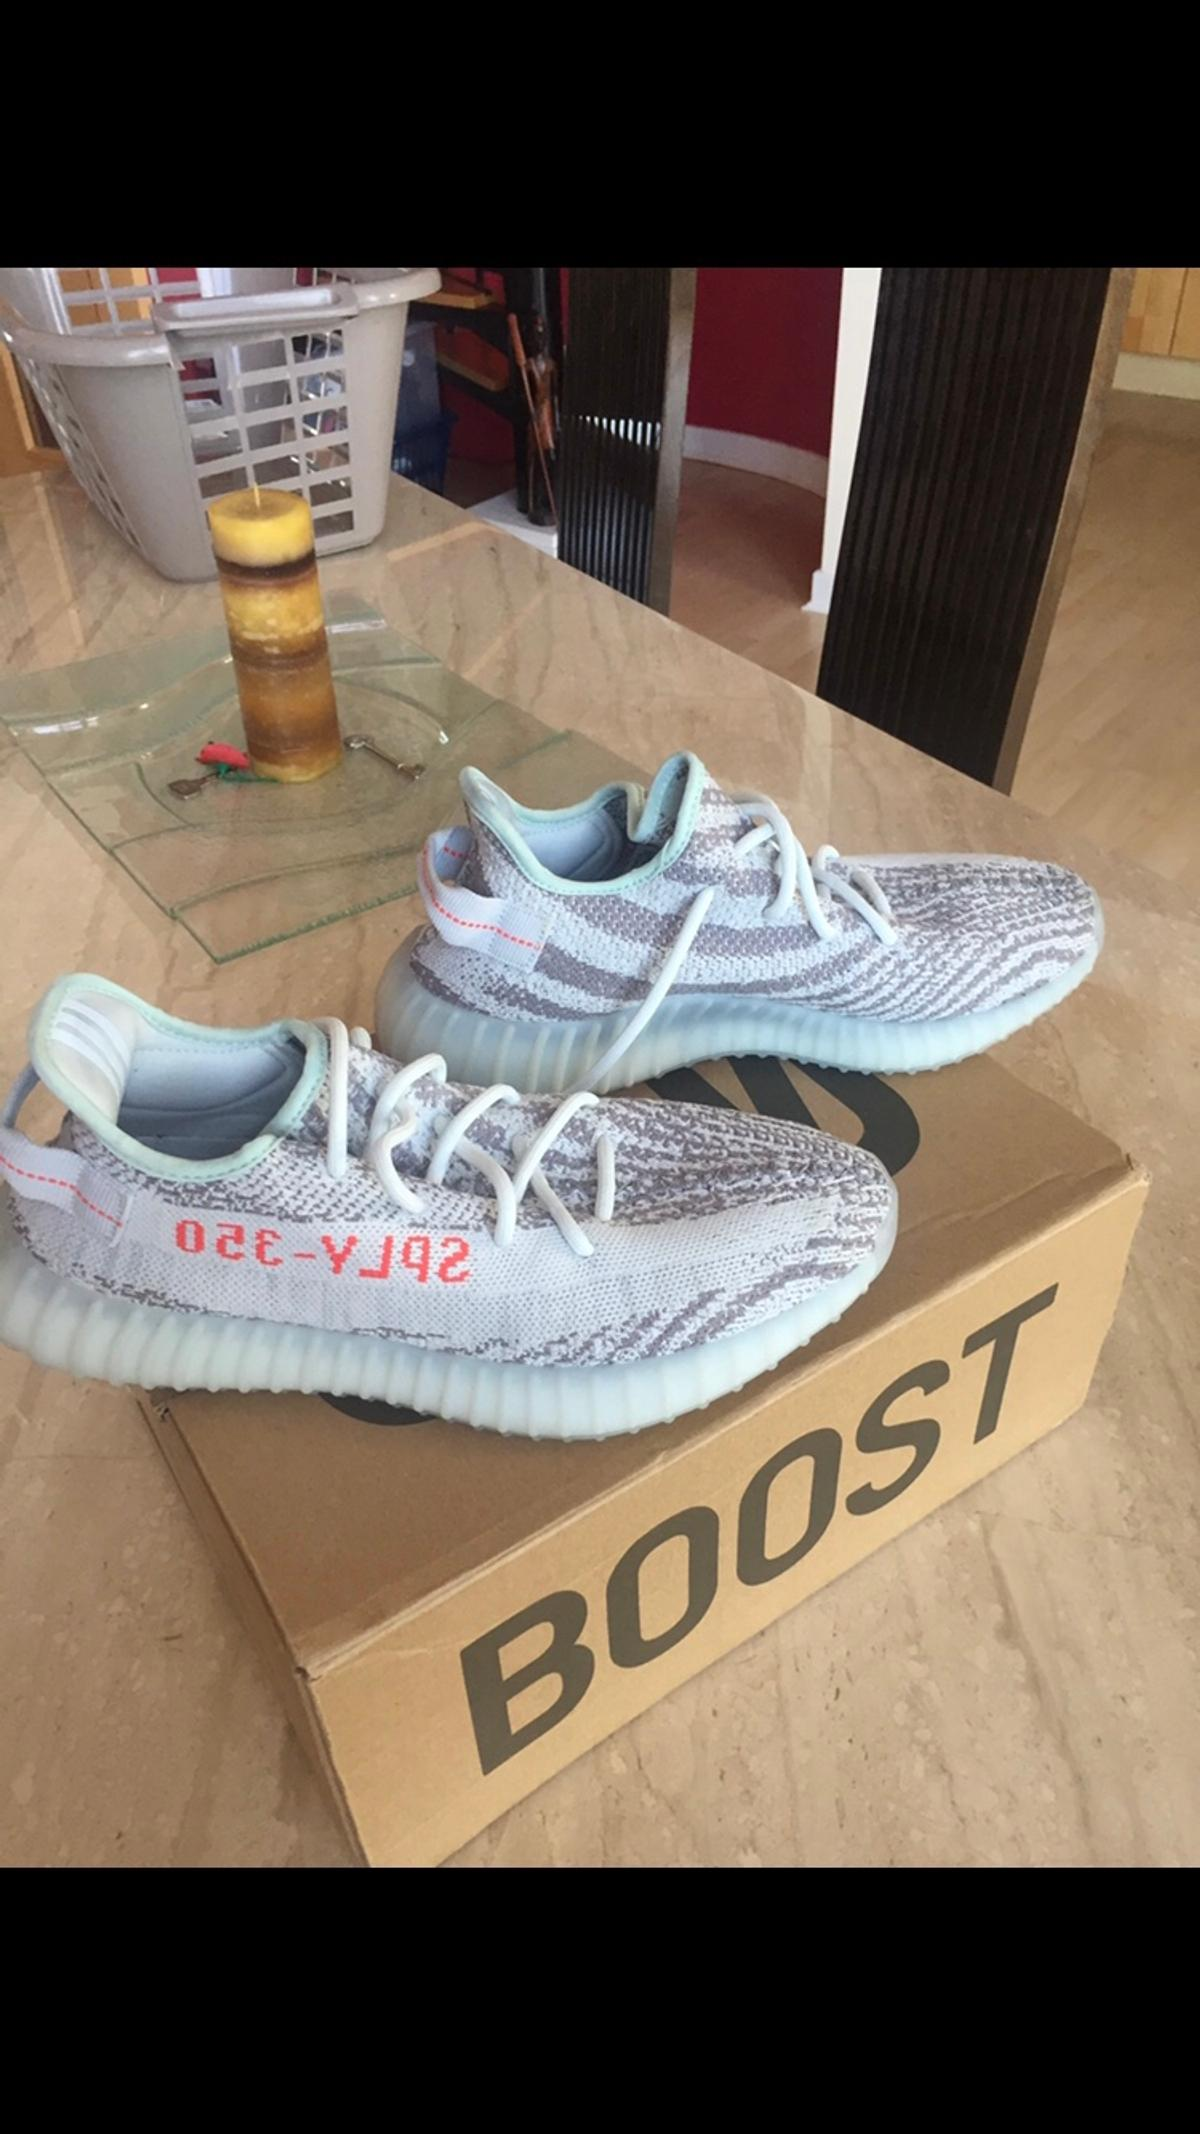 sports shoes f844a c068e Yeezy Blue Tint UK8.5 in W2 Westminster for £170.00 for sale ...